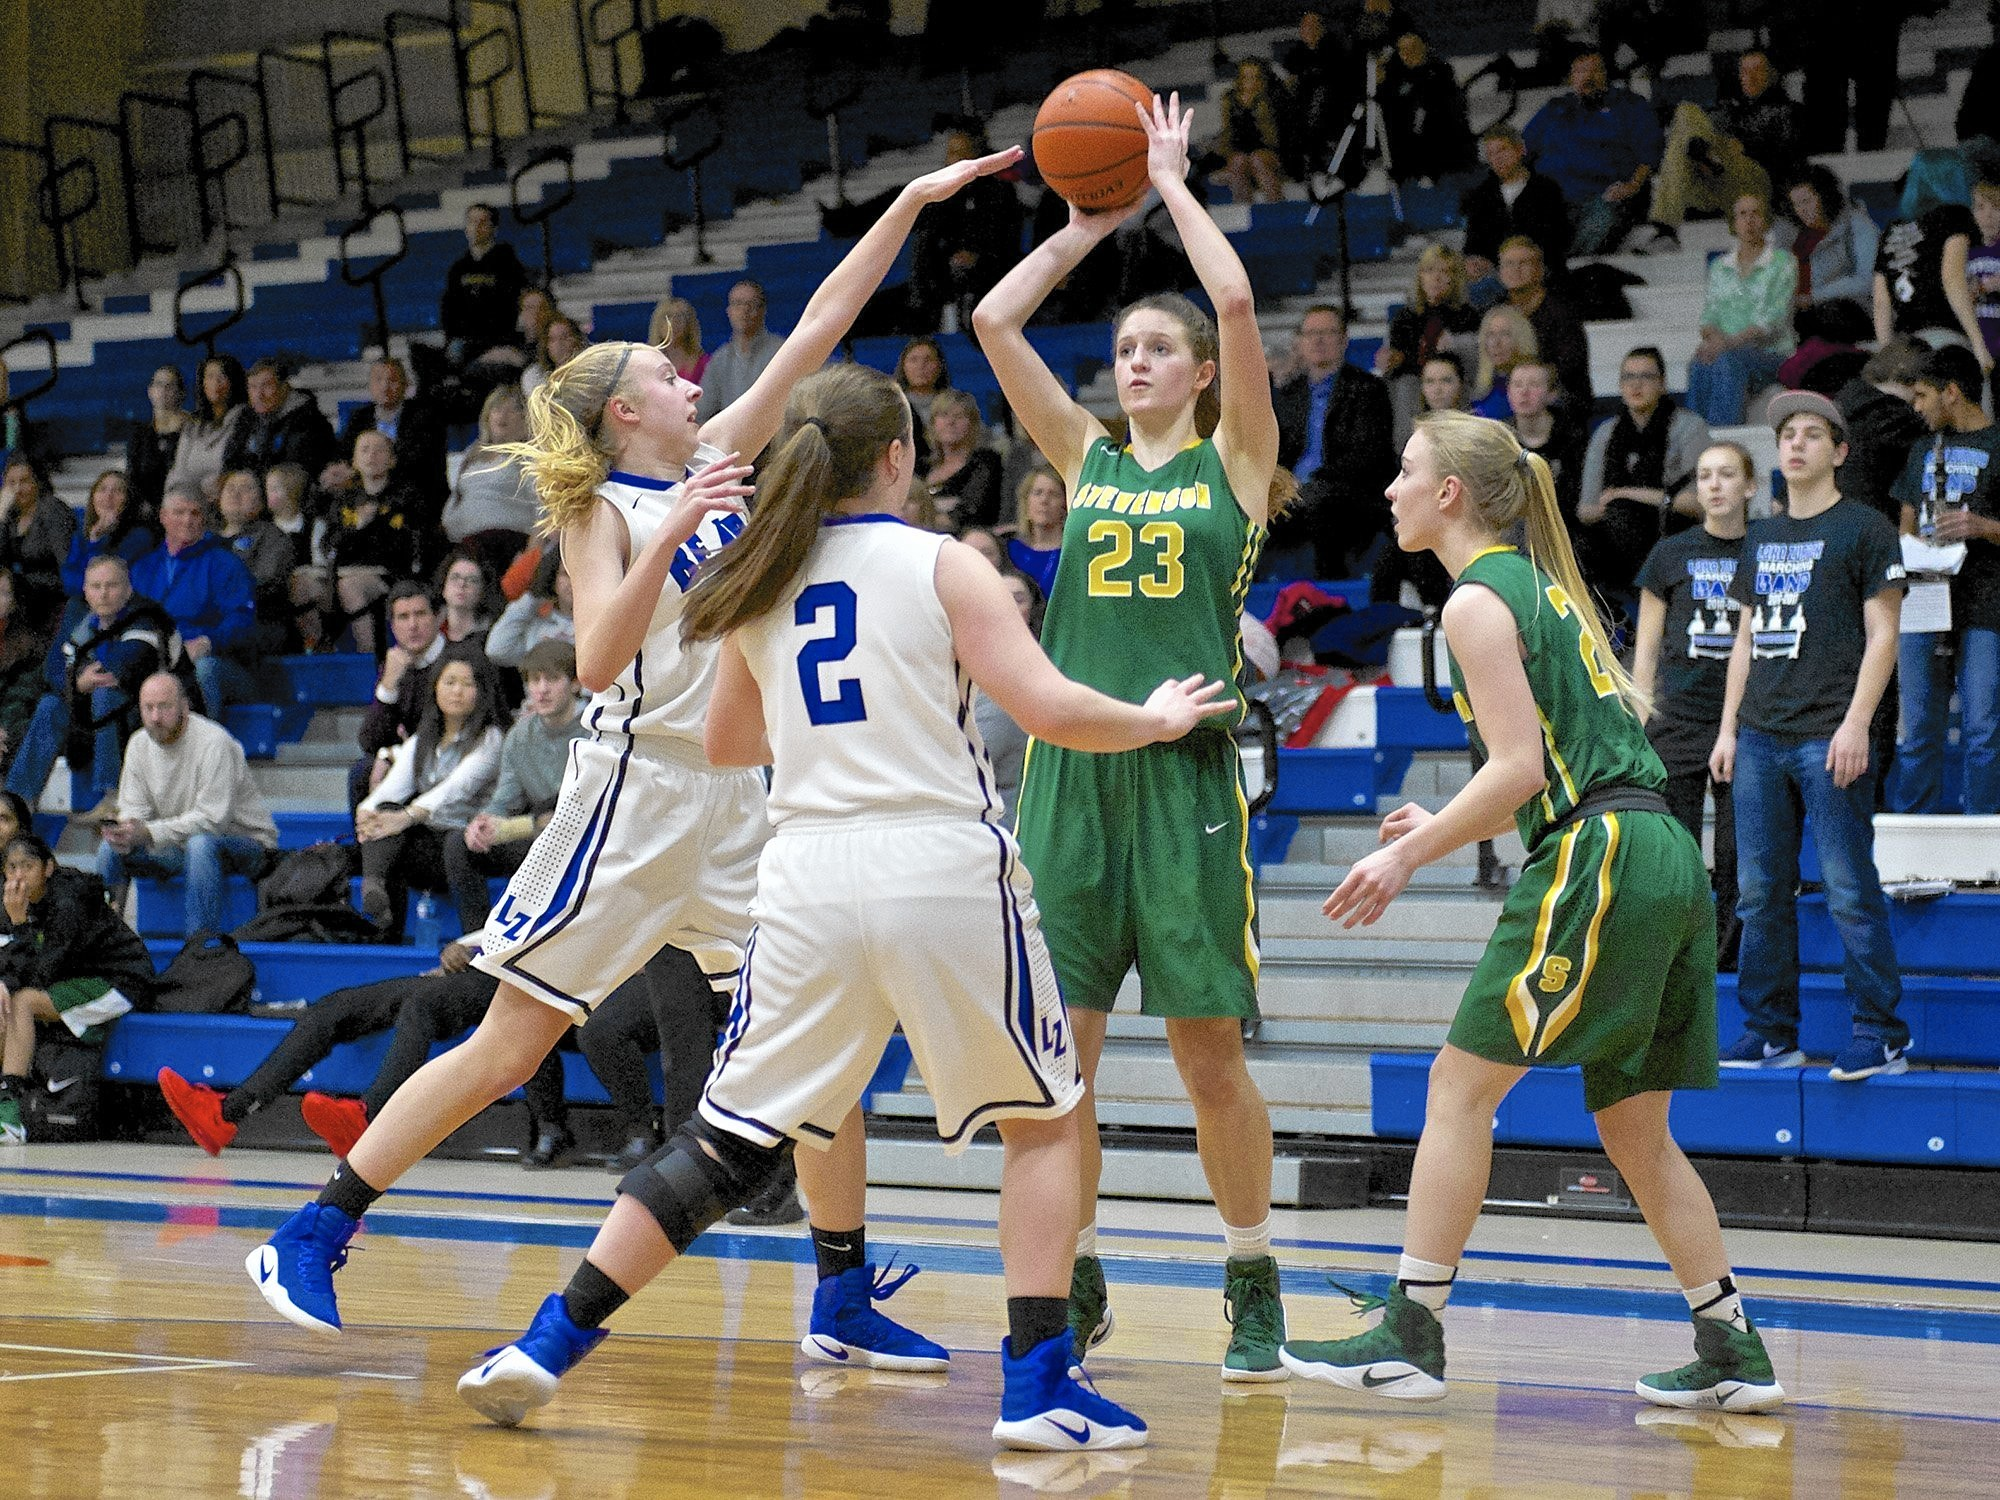 Stevenson Turns To Isabella Paldrmic Julia Osuch For